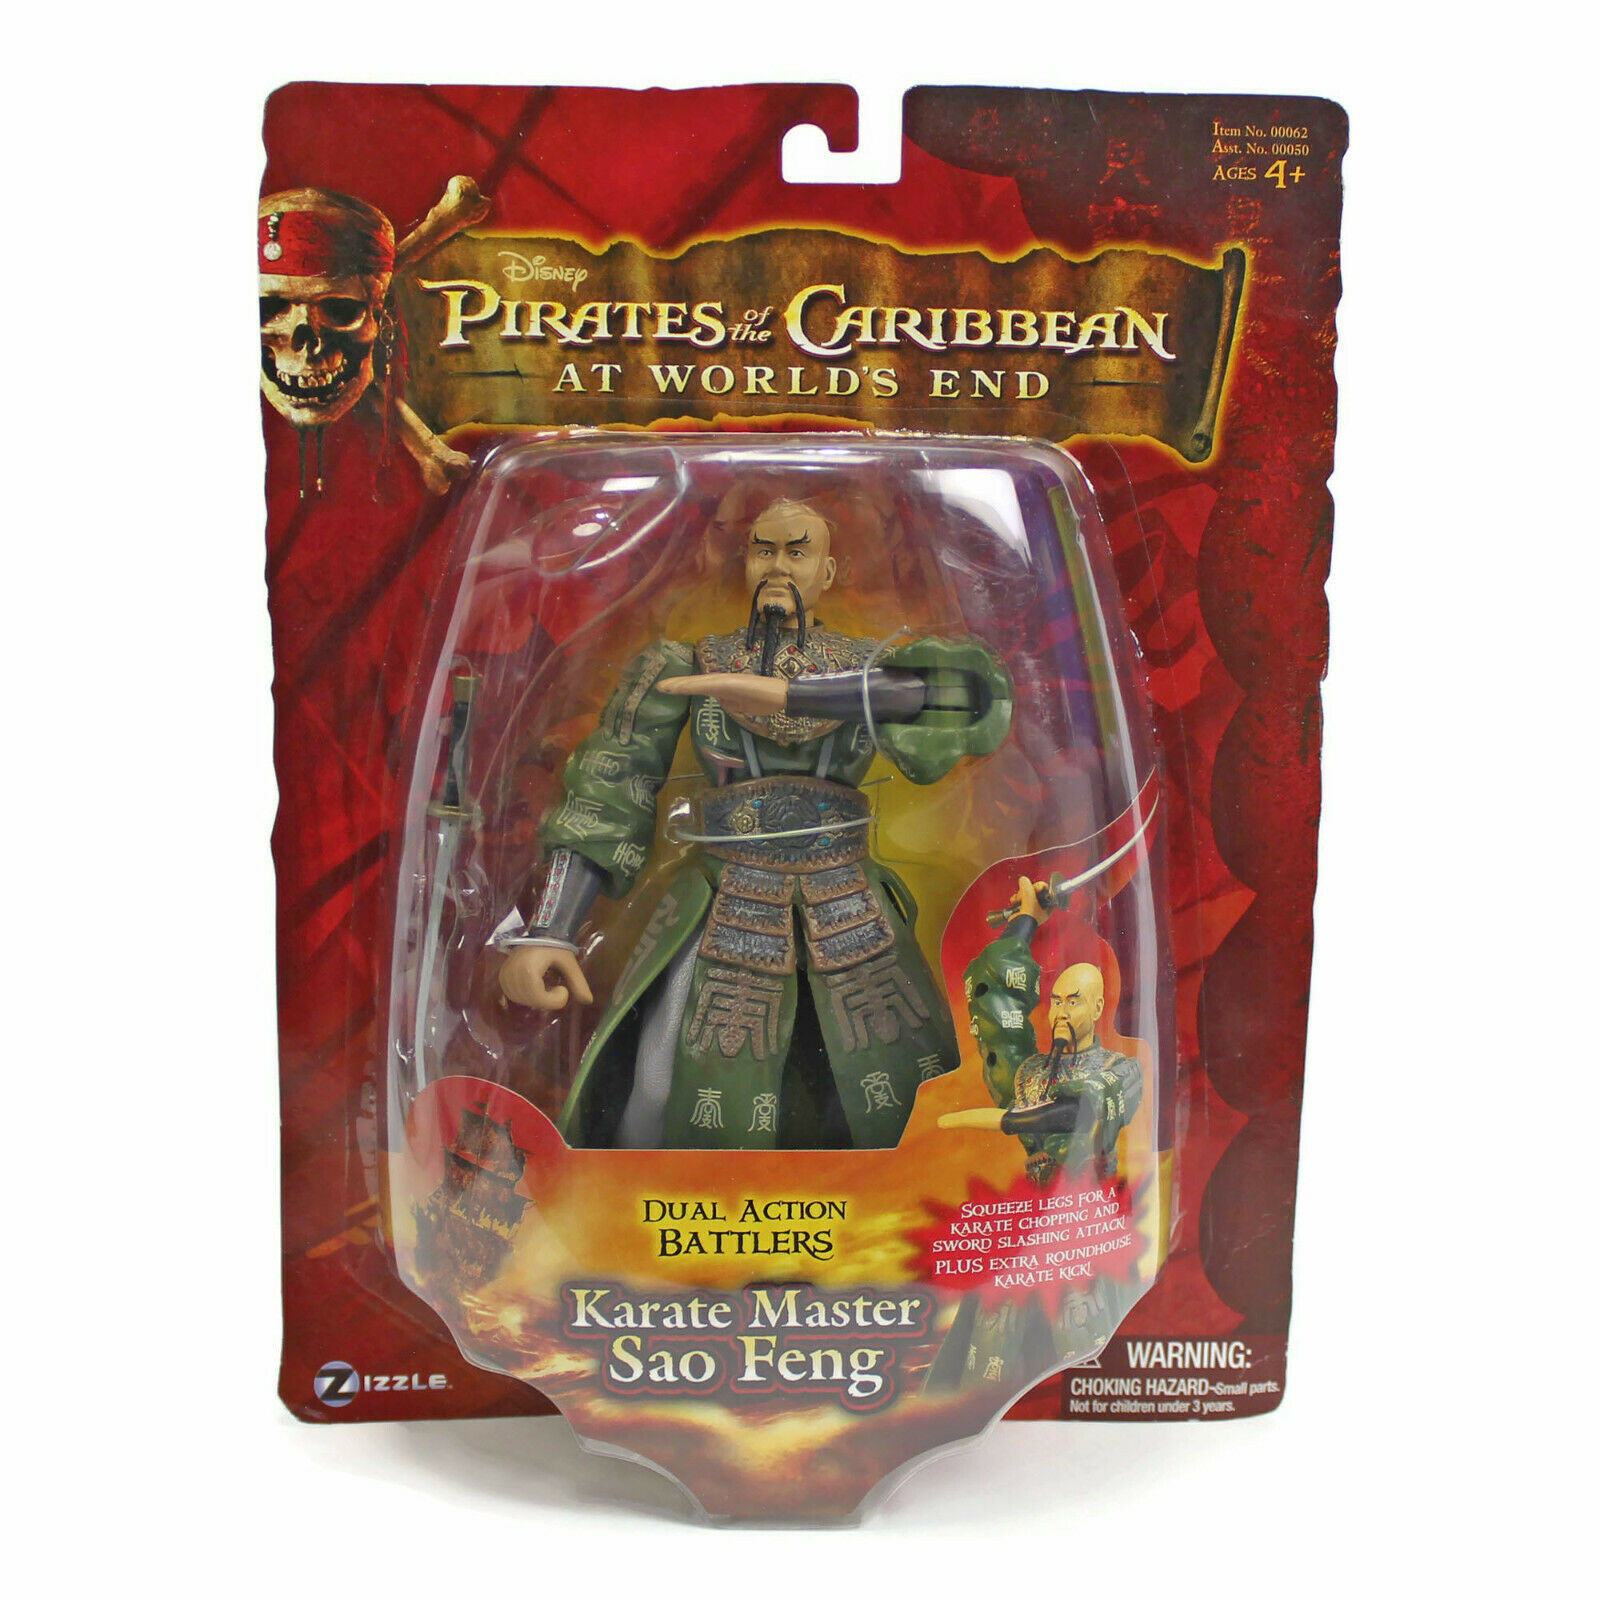 Pirates of the Caribbean | Karate Master SAO FENG | Action Figure | Worlds End